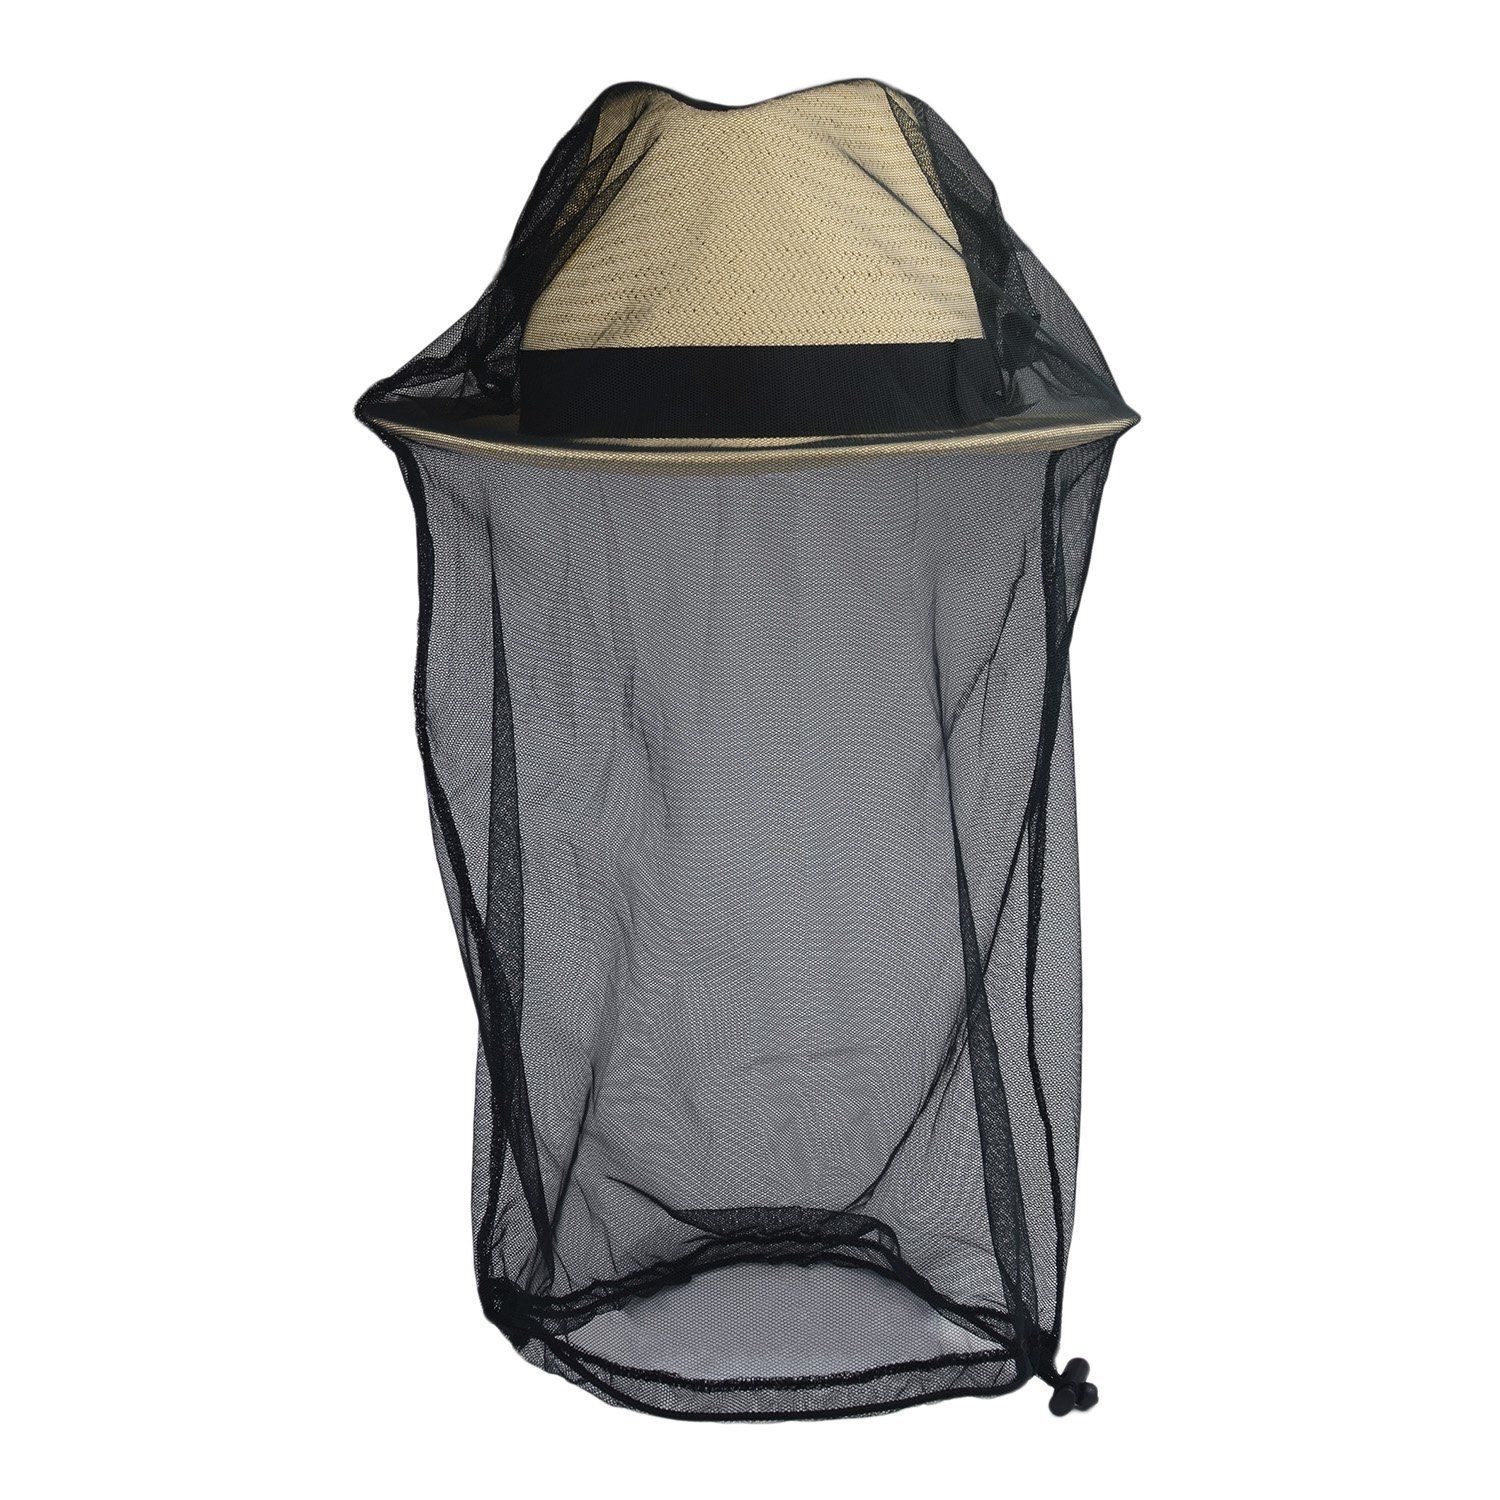 Flammi Mosquito Head Net Face Head Protection Insect Bug Net (Net/Veil Only) (Black / L)